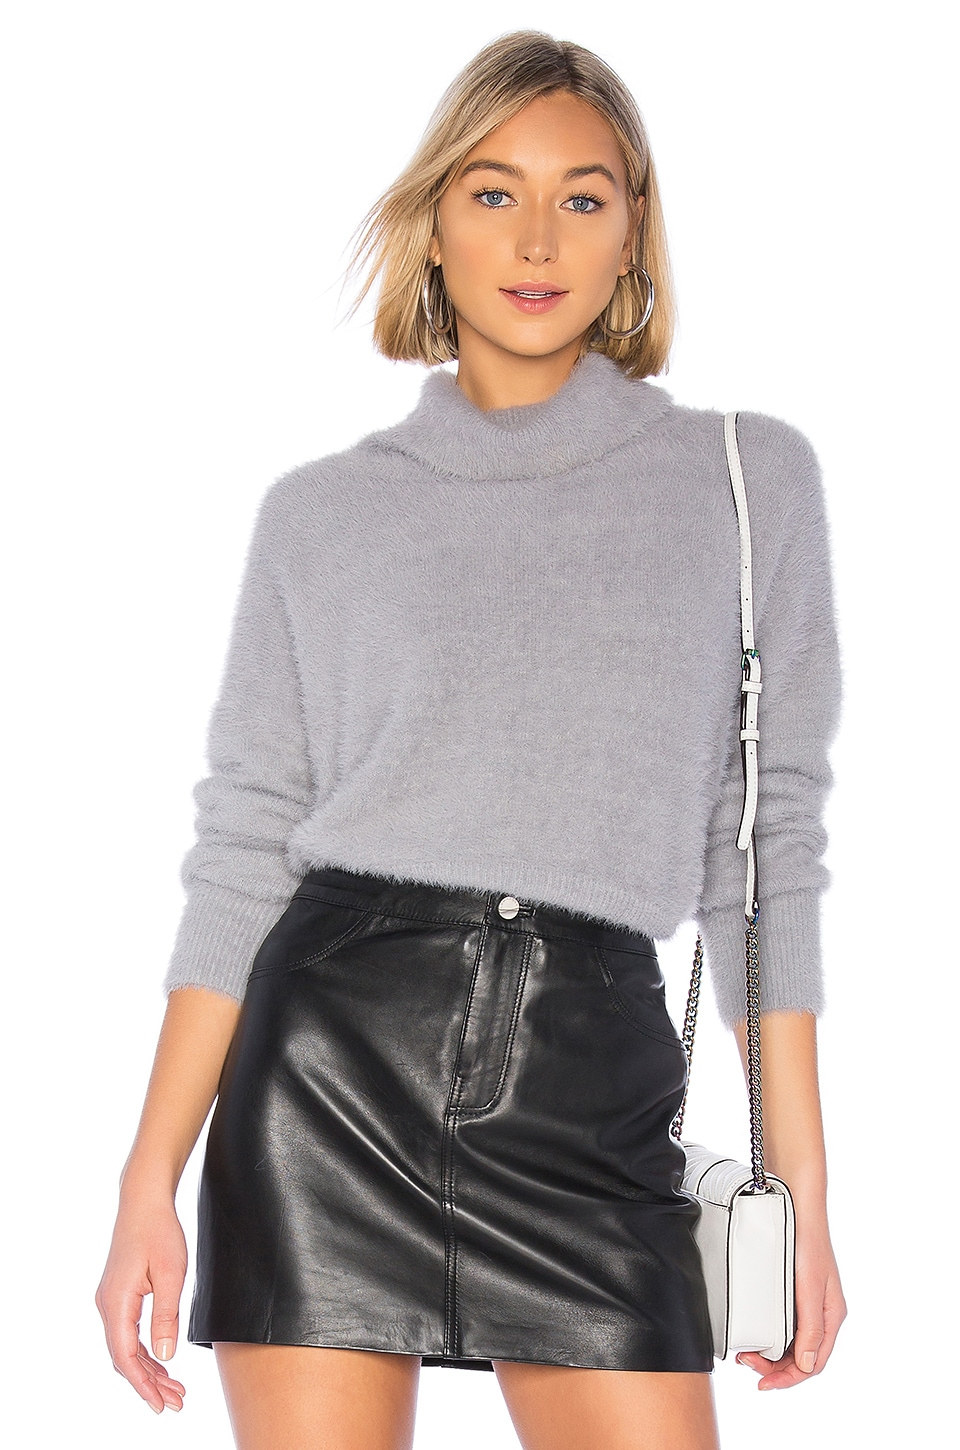 Bella Dahl Turtleneck Sweater in Gunmetal Grey